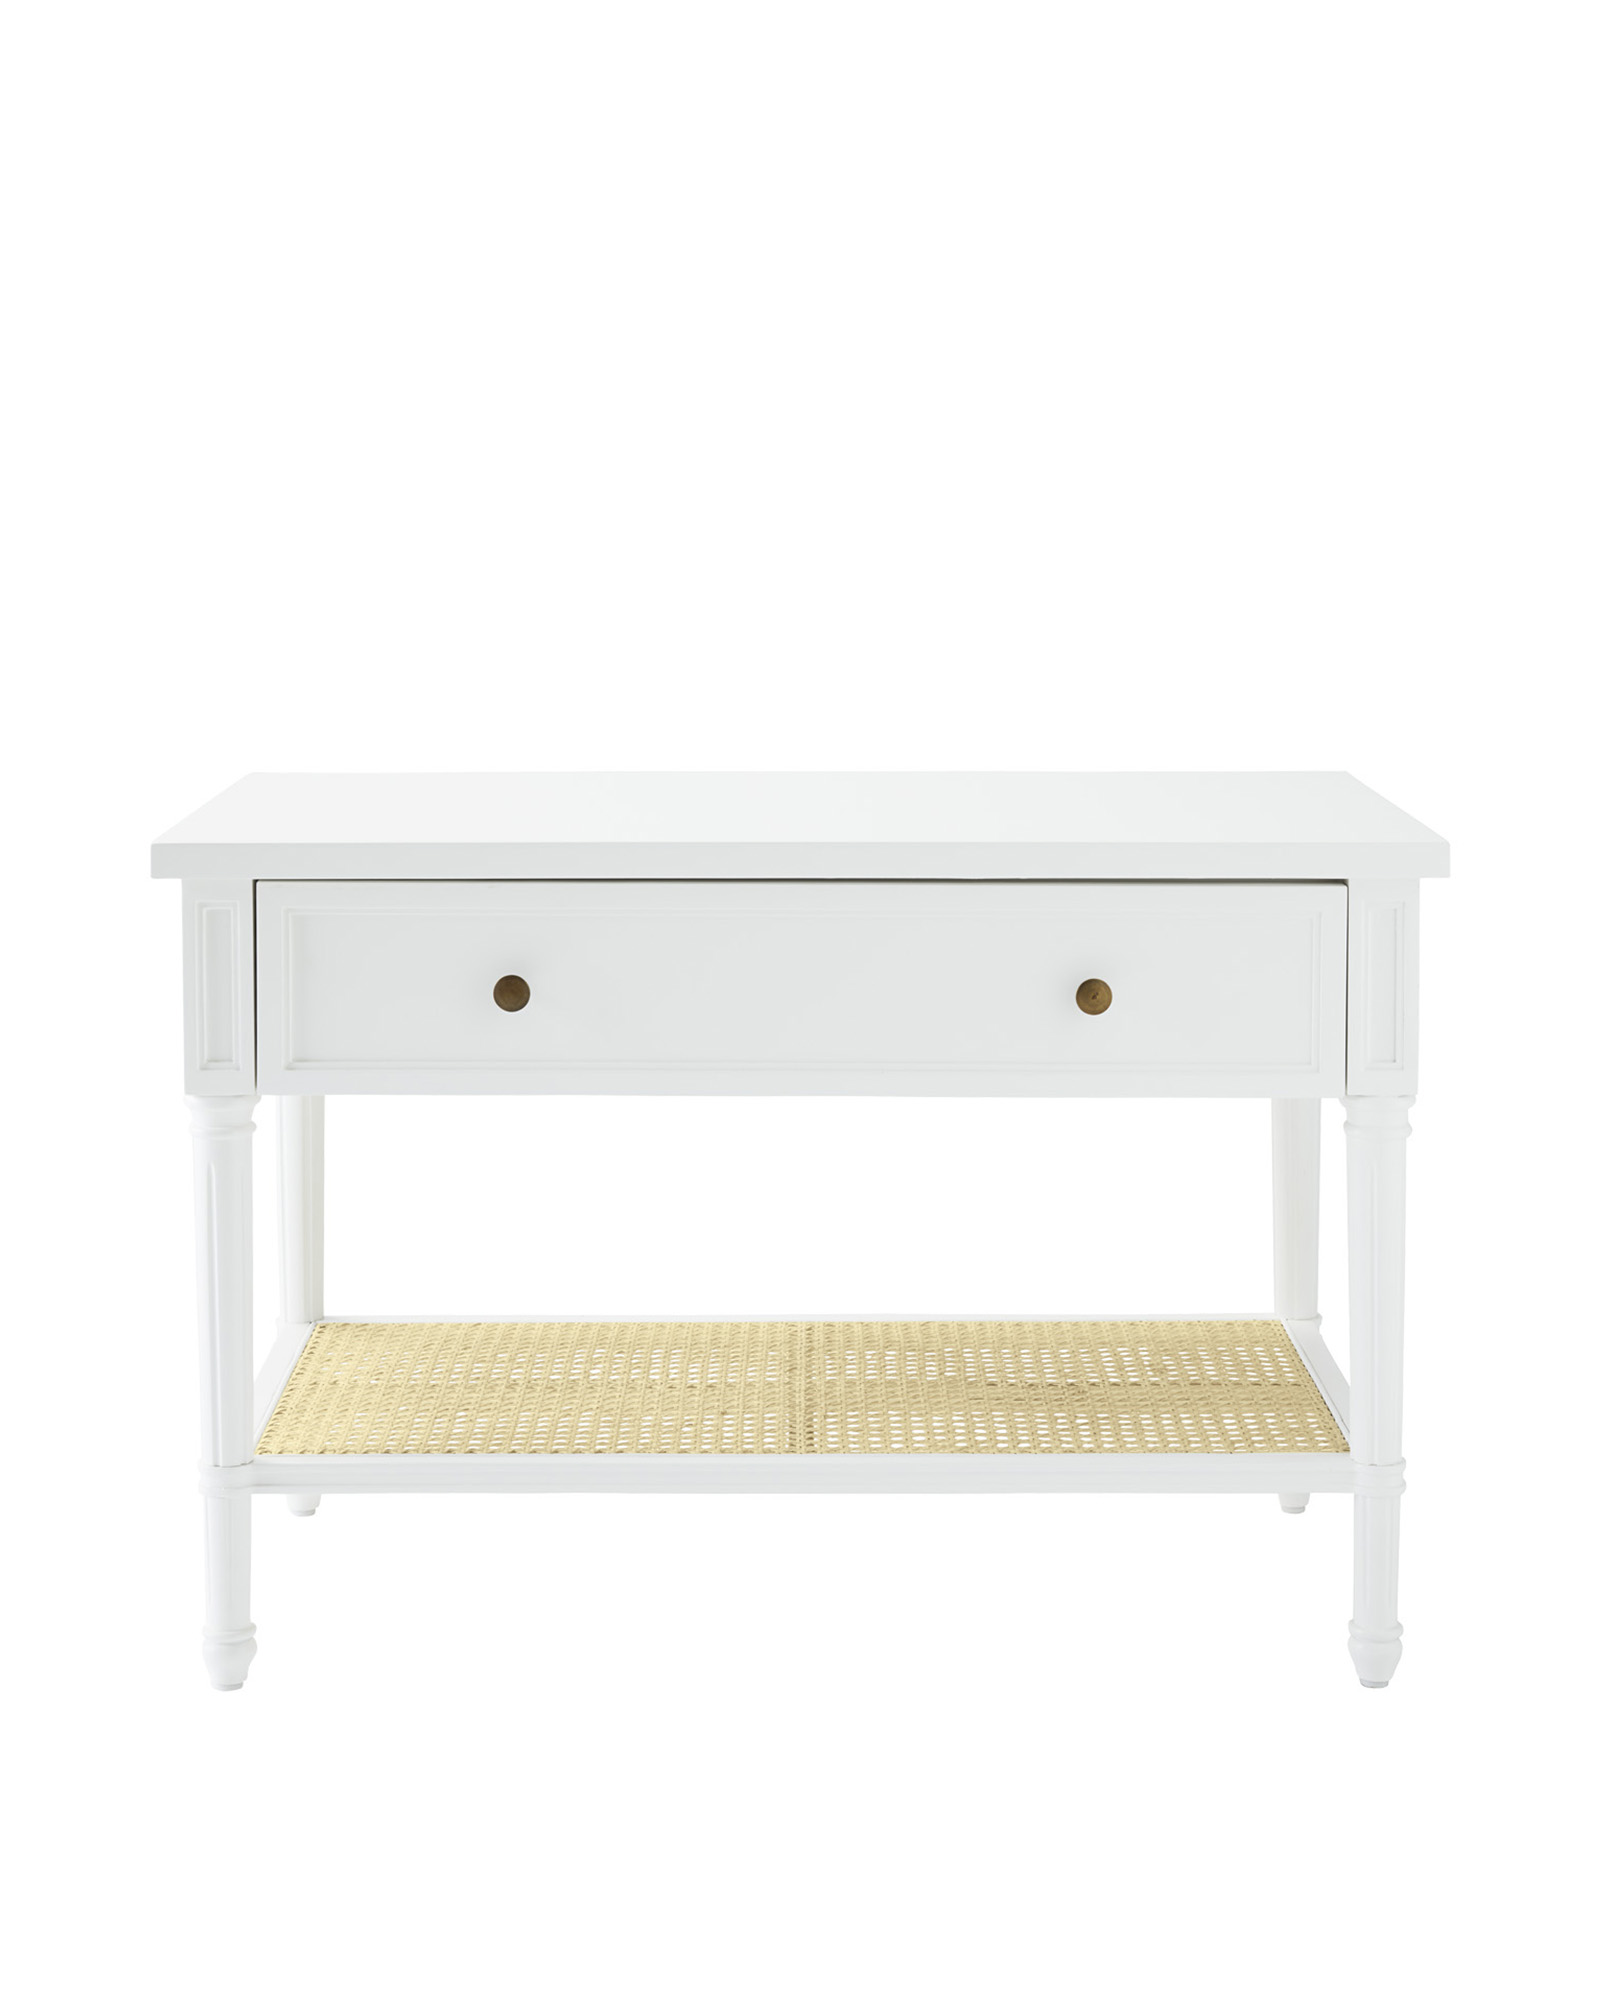 Furn_Harbour_Cane_Nightstand_White_Front_MV_Crop_BASE-1.jpg